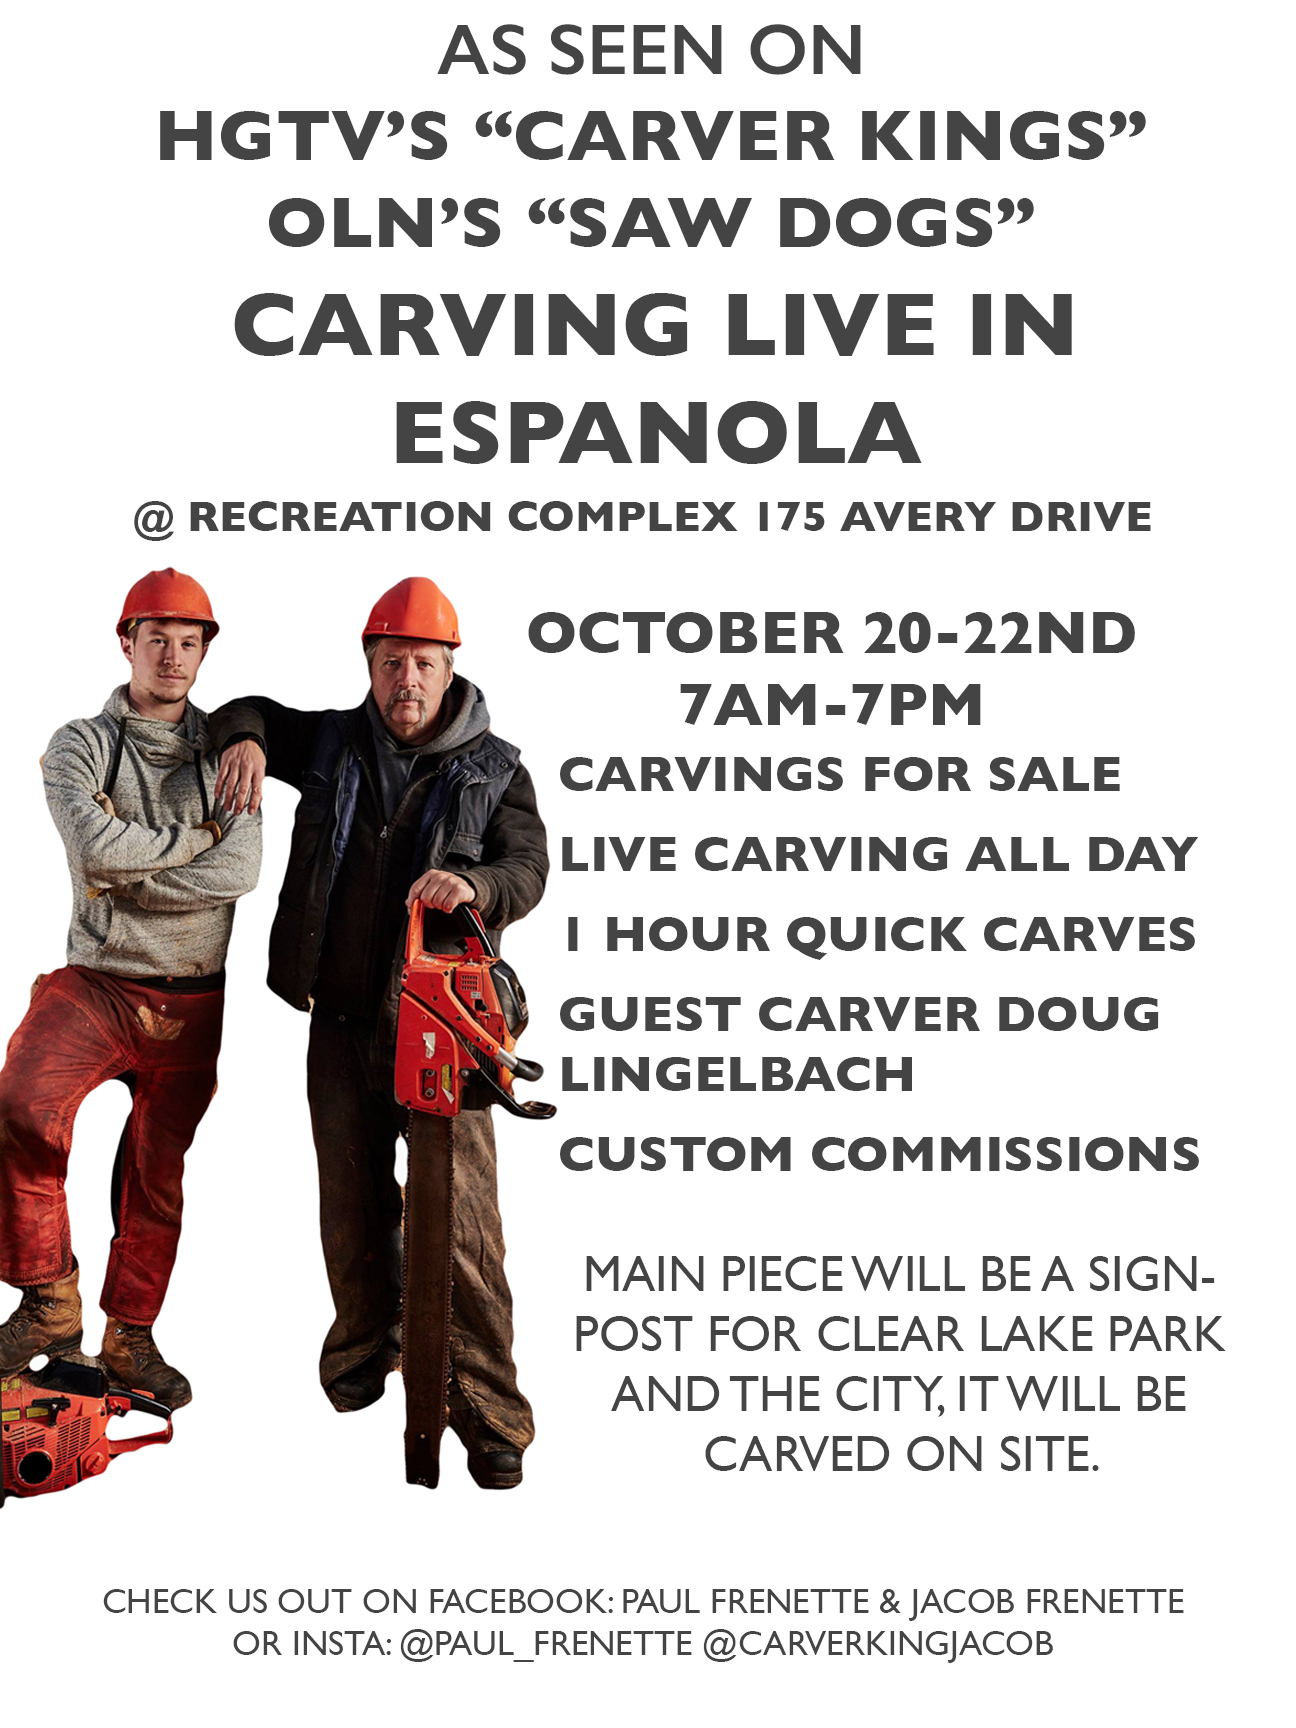 Live Carving in Espanola